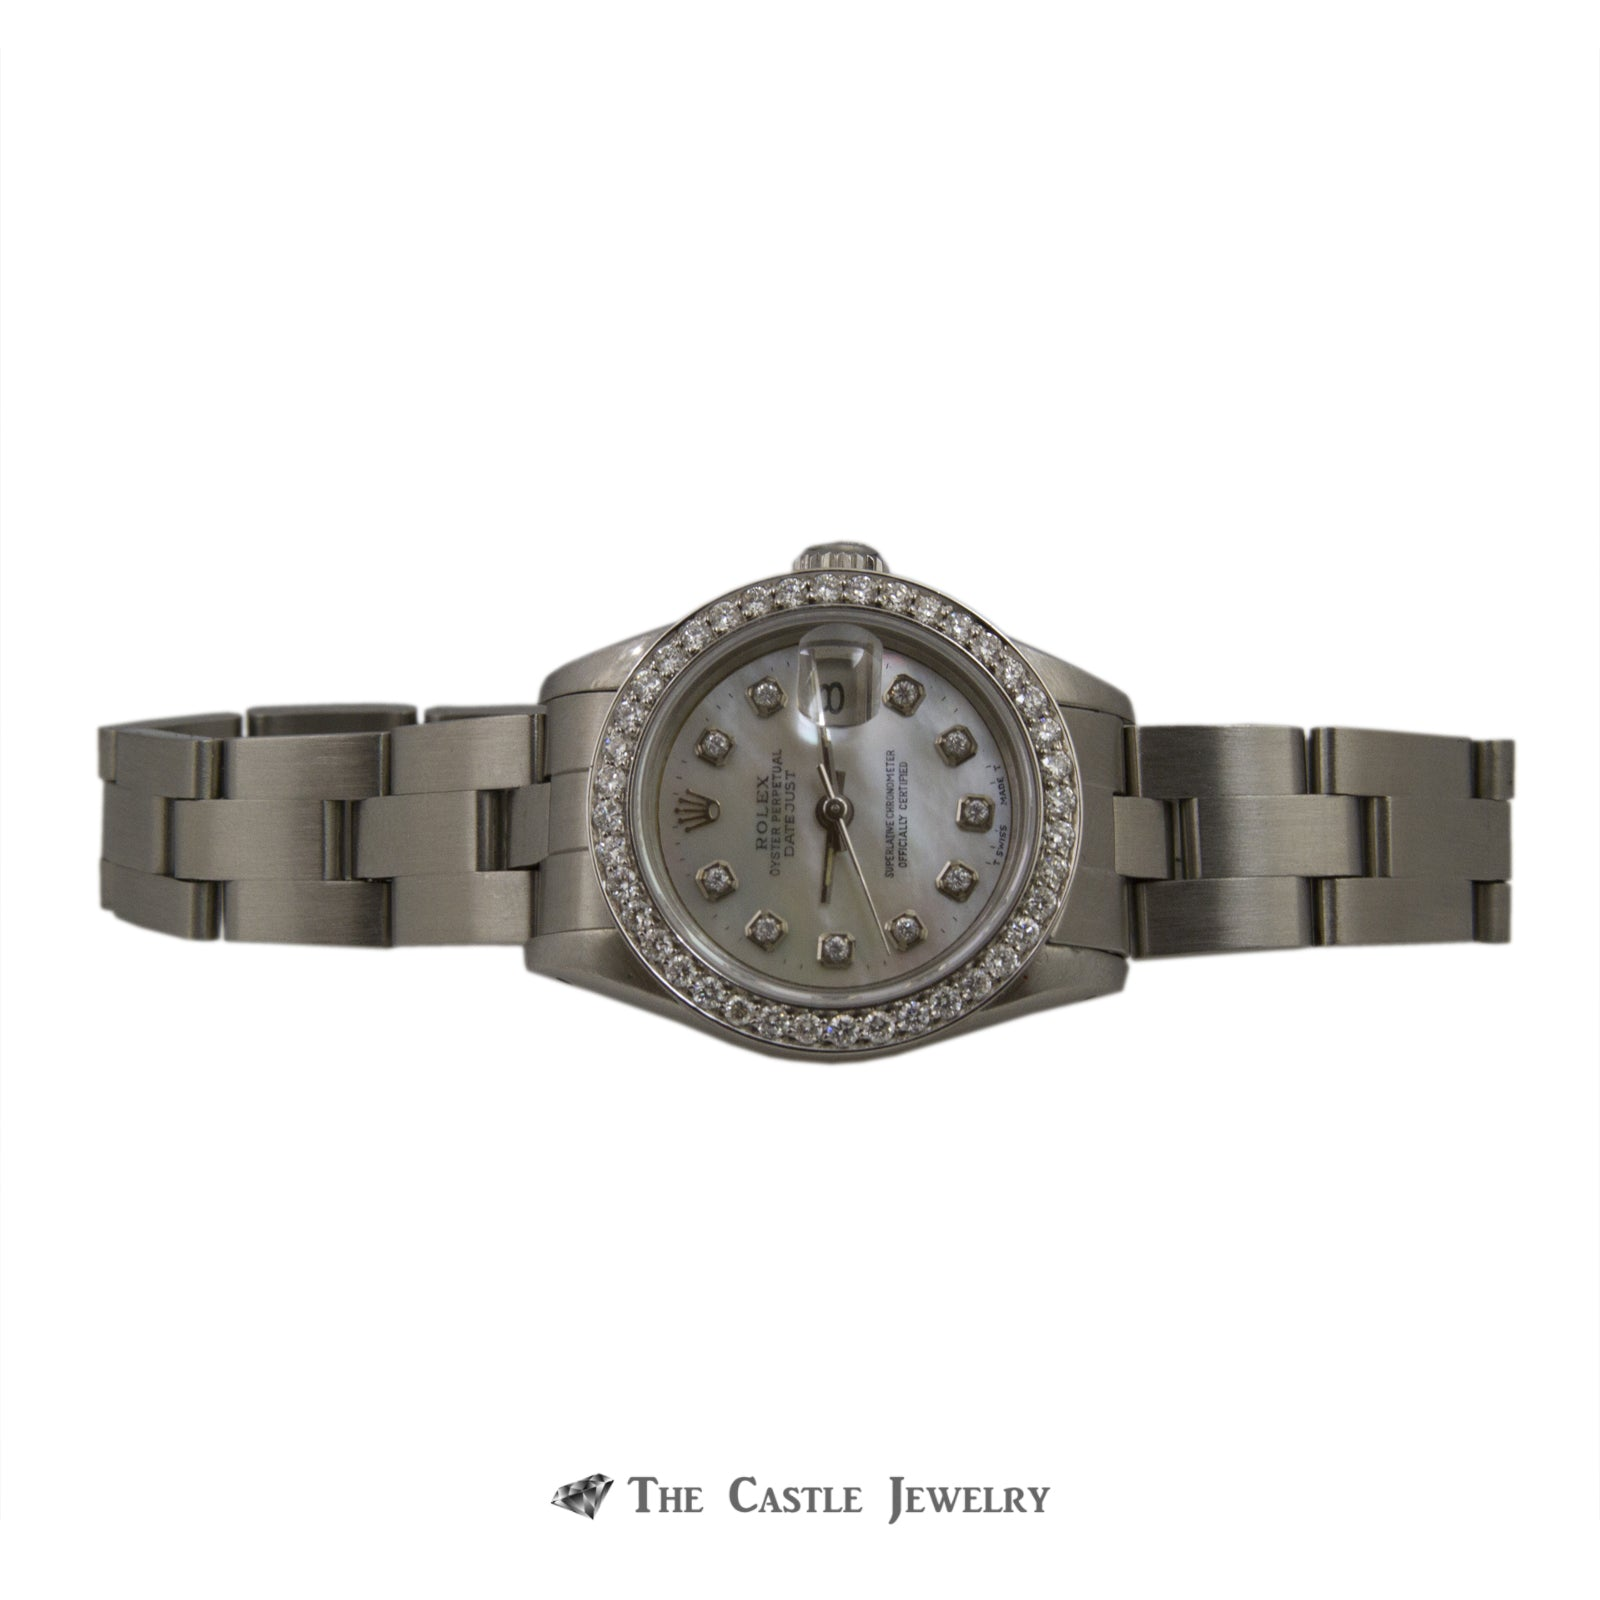 Rolex Datejust 26mm Watch Stainless Steel w/ Mother of Pearl Diamond Dial & Bezel 69160-4